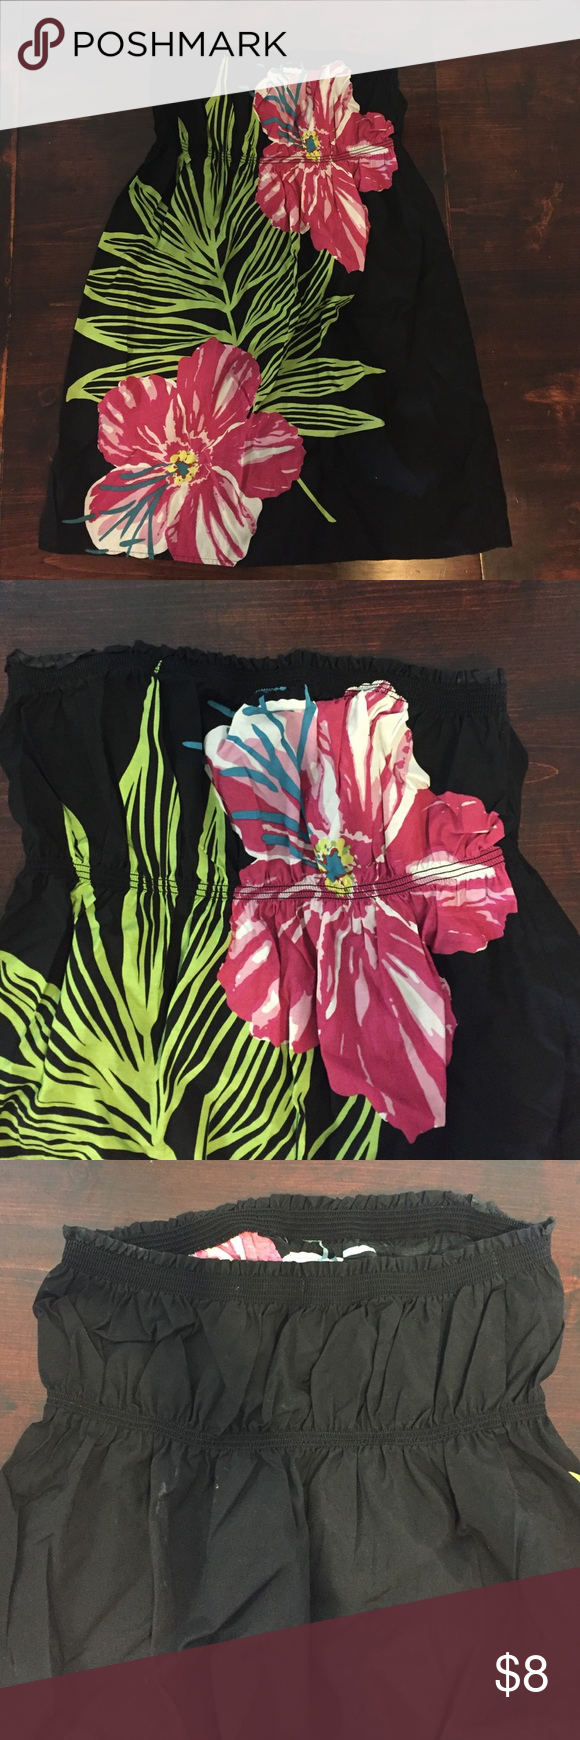 Old Navy Swim Coverup Old Navy Swim Coverup with beautiful flower across the front. Worn once! Hits right above the knee. Old Navy Swim Coverups